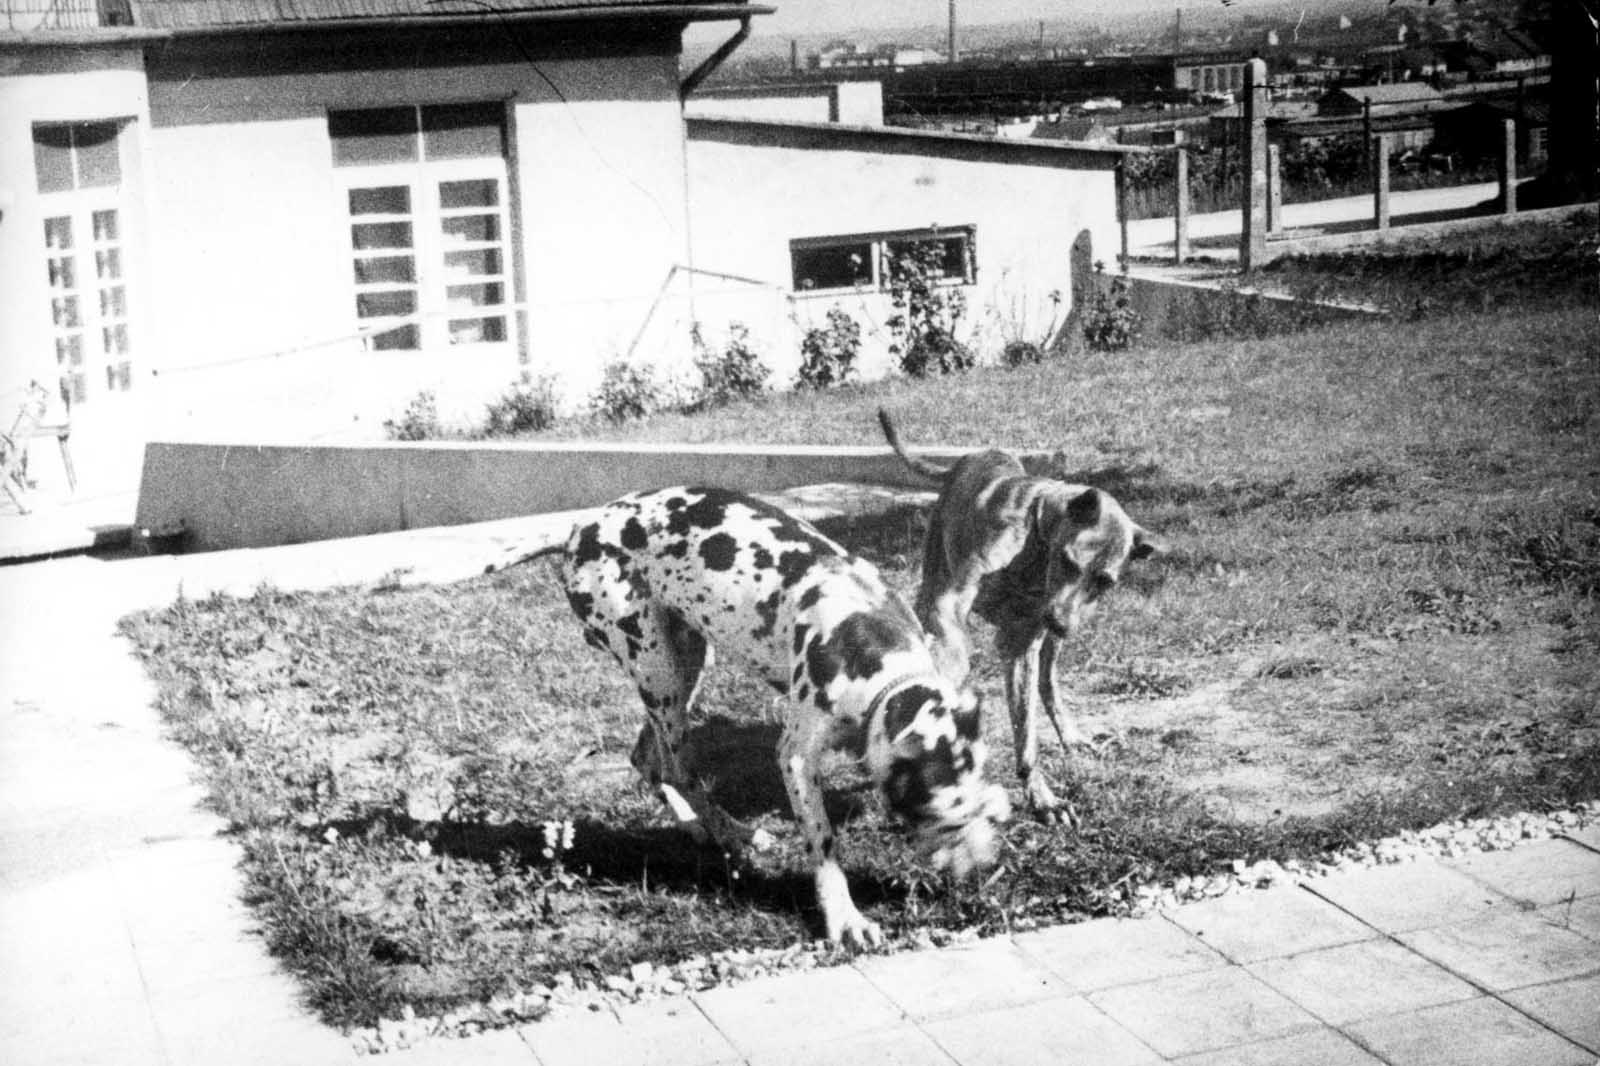 Commandant Amon Goeth's dog (Rolf) together with another dog. Arthur Kuhnreich, a Holocaust survivor: